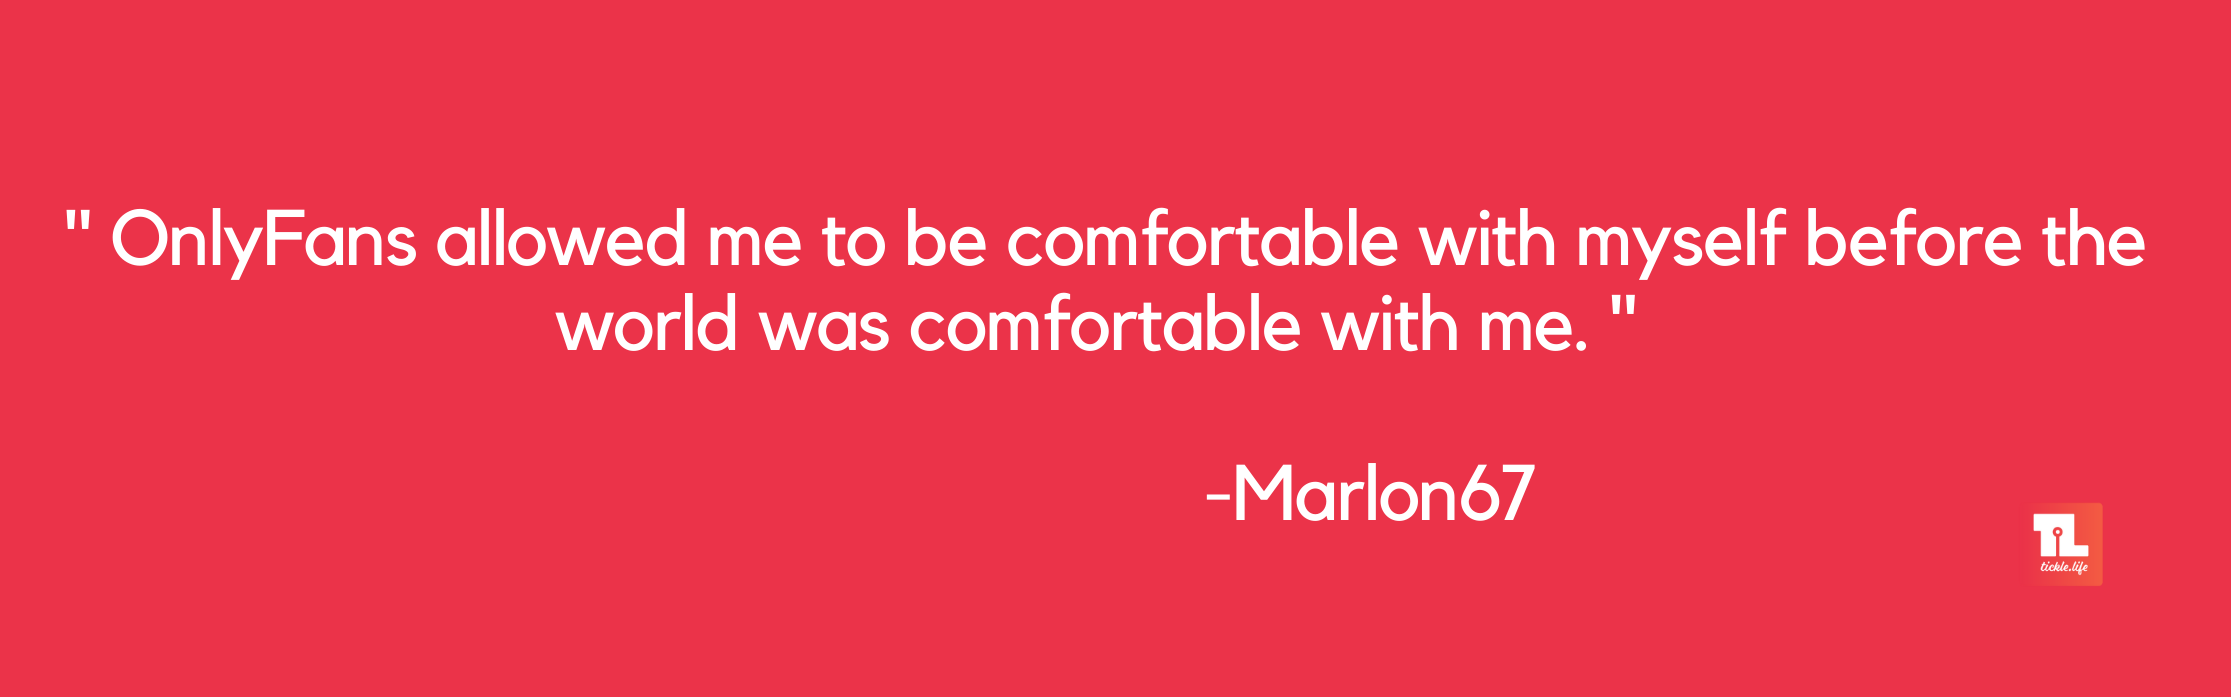 Marlon67's quote Adult Entertainer Quotes Tickle.Life Interview with OnlyFans creator